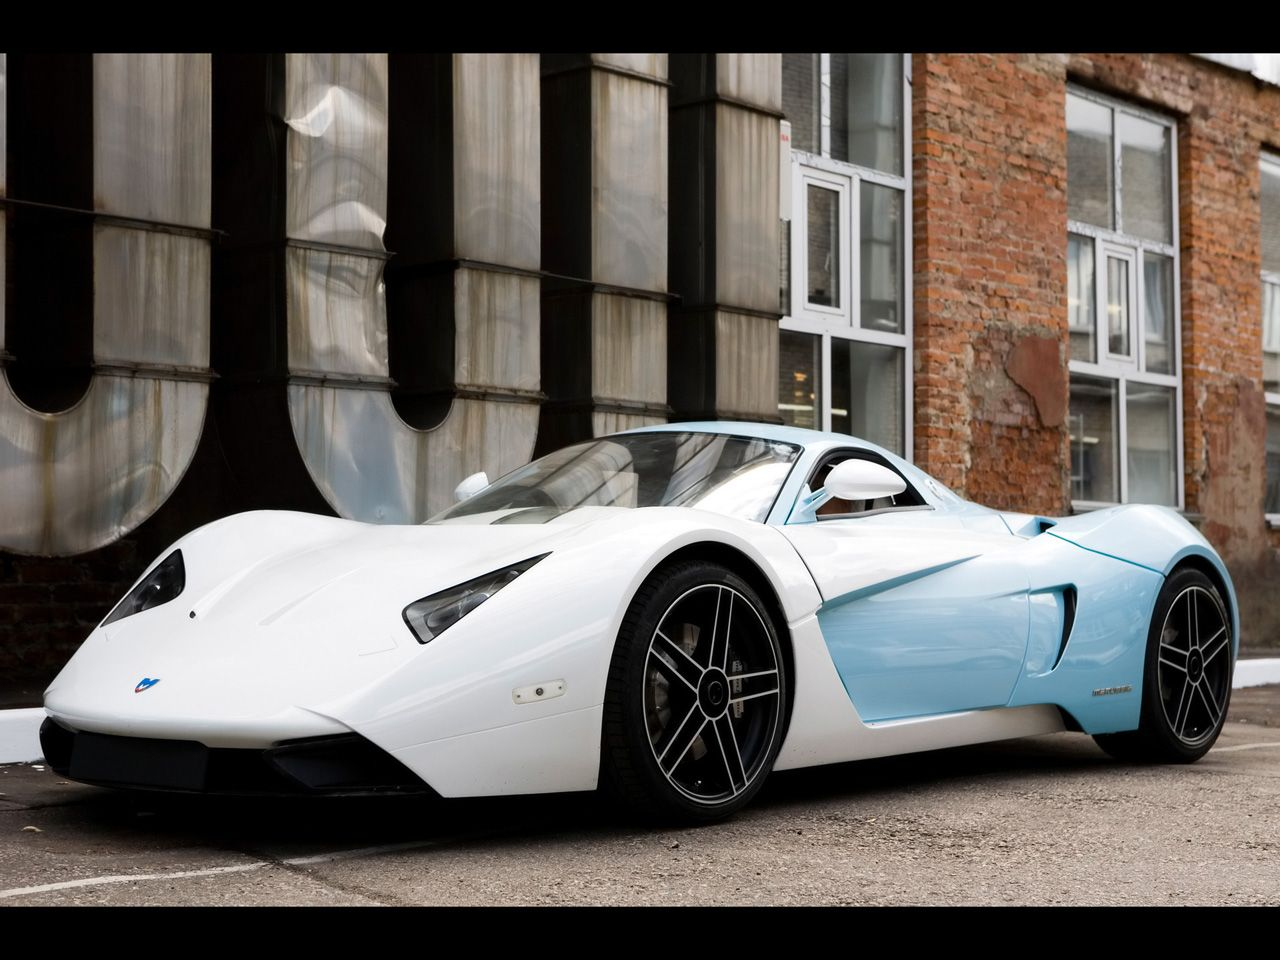 B1 - The first Russian sports car and first car made by Marussia ...